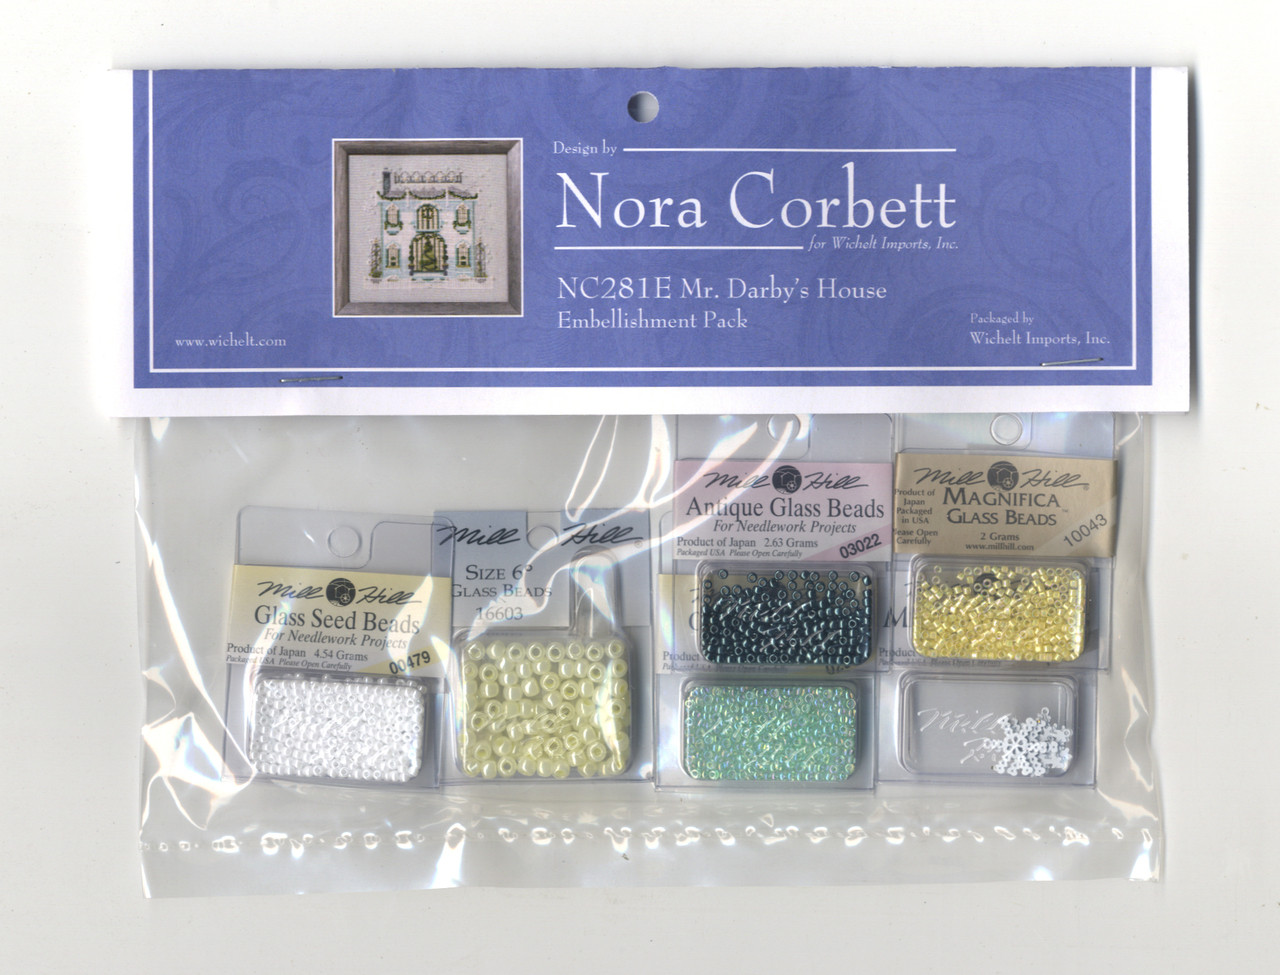 Nora Corbett Embellishment Pack  - Mr. Darby's House